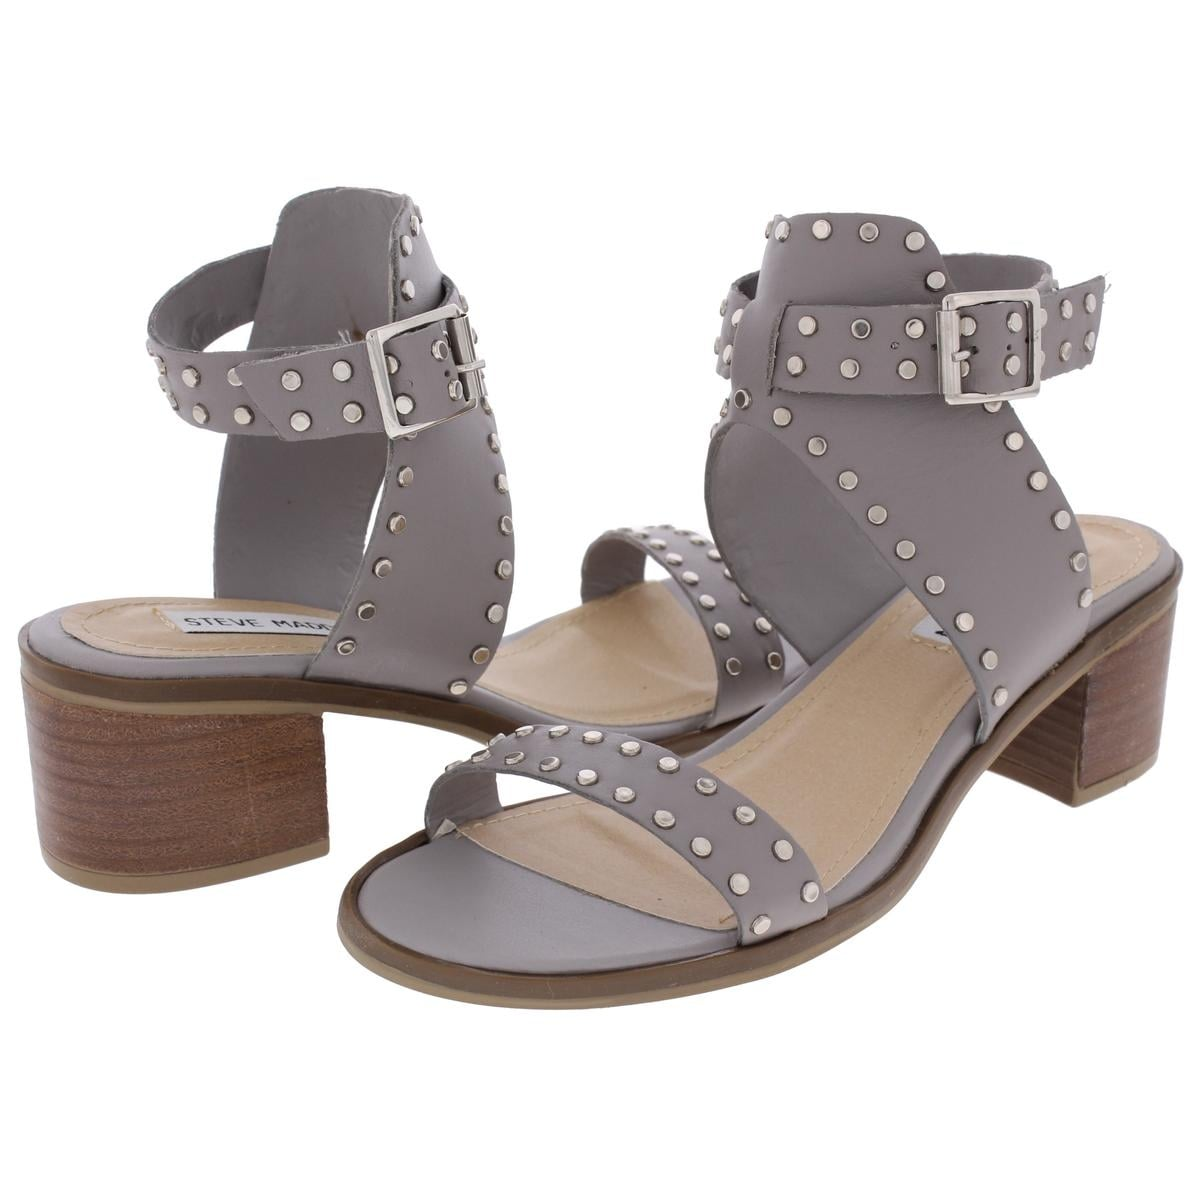 0012b7be971536 Shop Steve Madden Womens Gila Dress Sandals Studded - Free Shipping On  Orders Over  45 - Overstock - 20599567